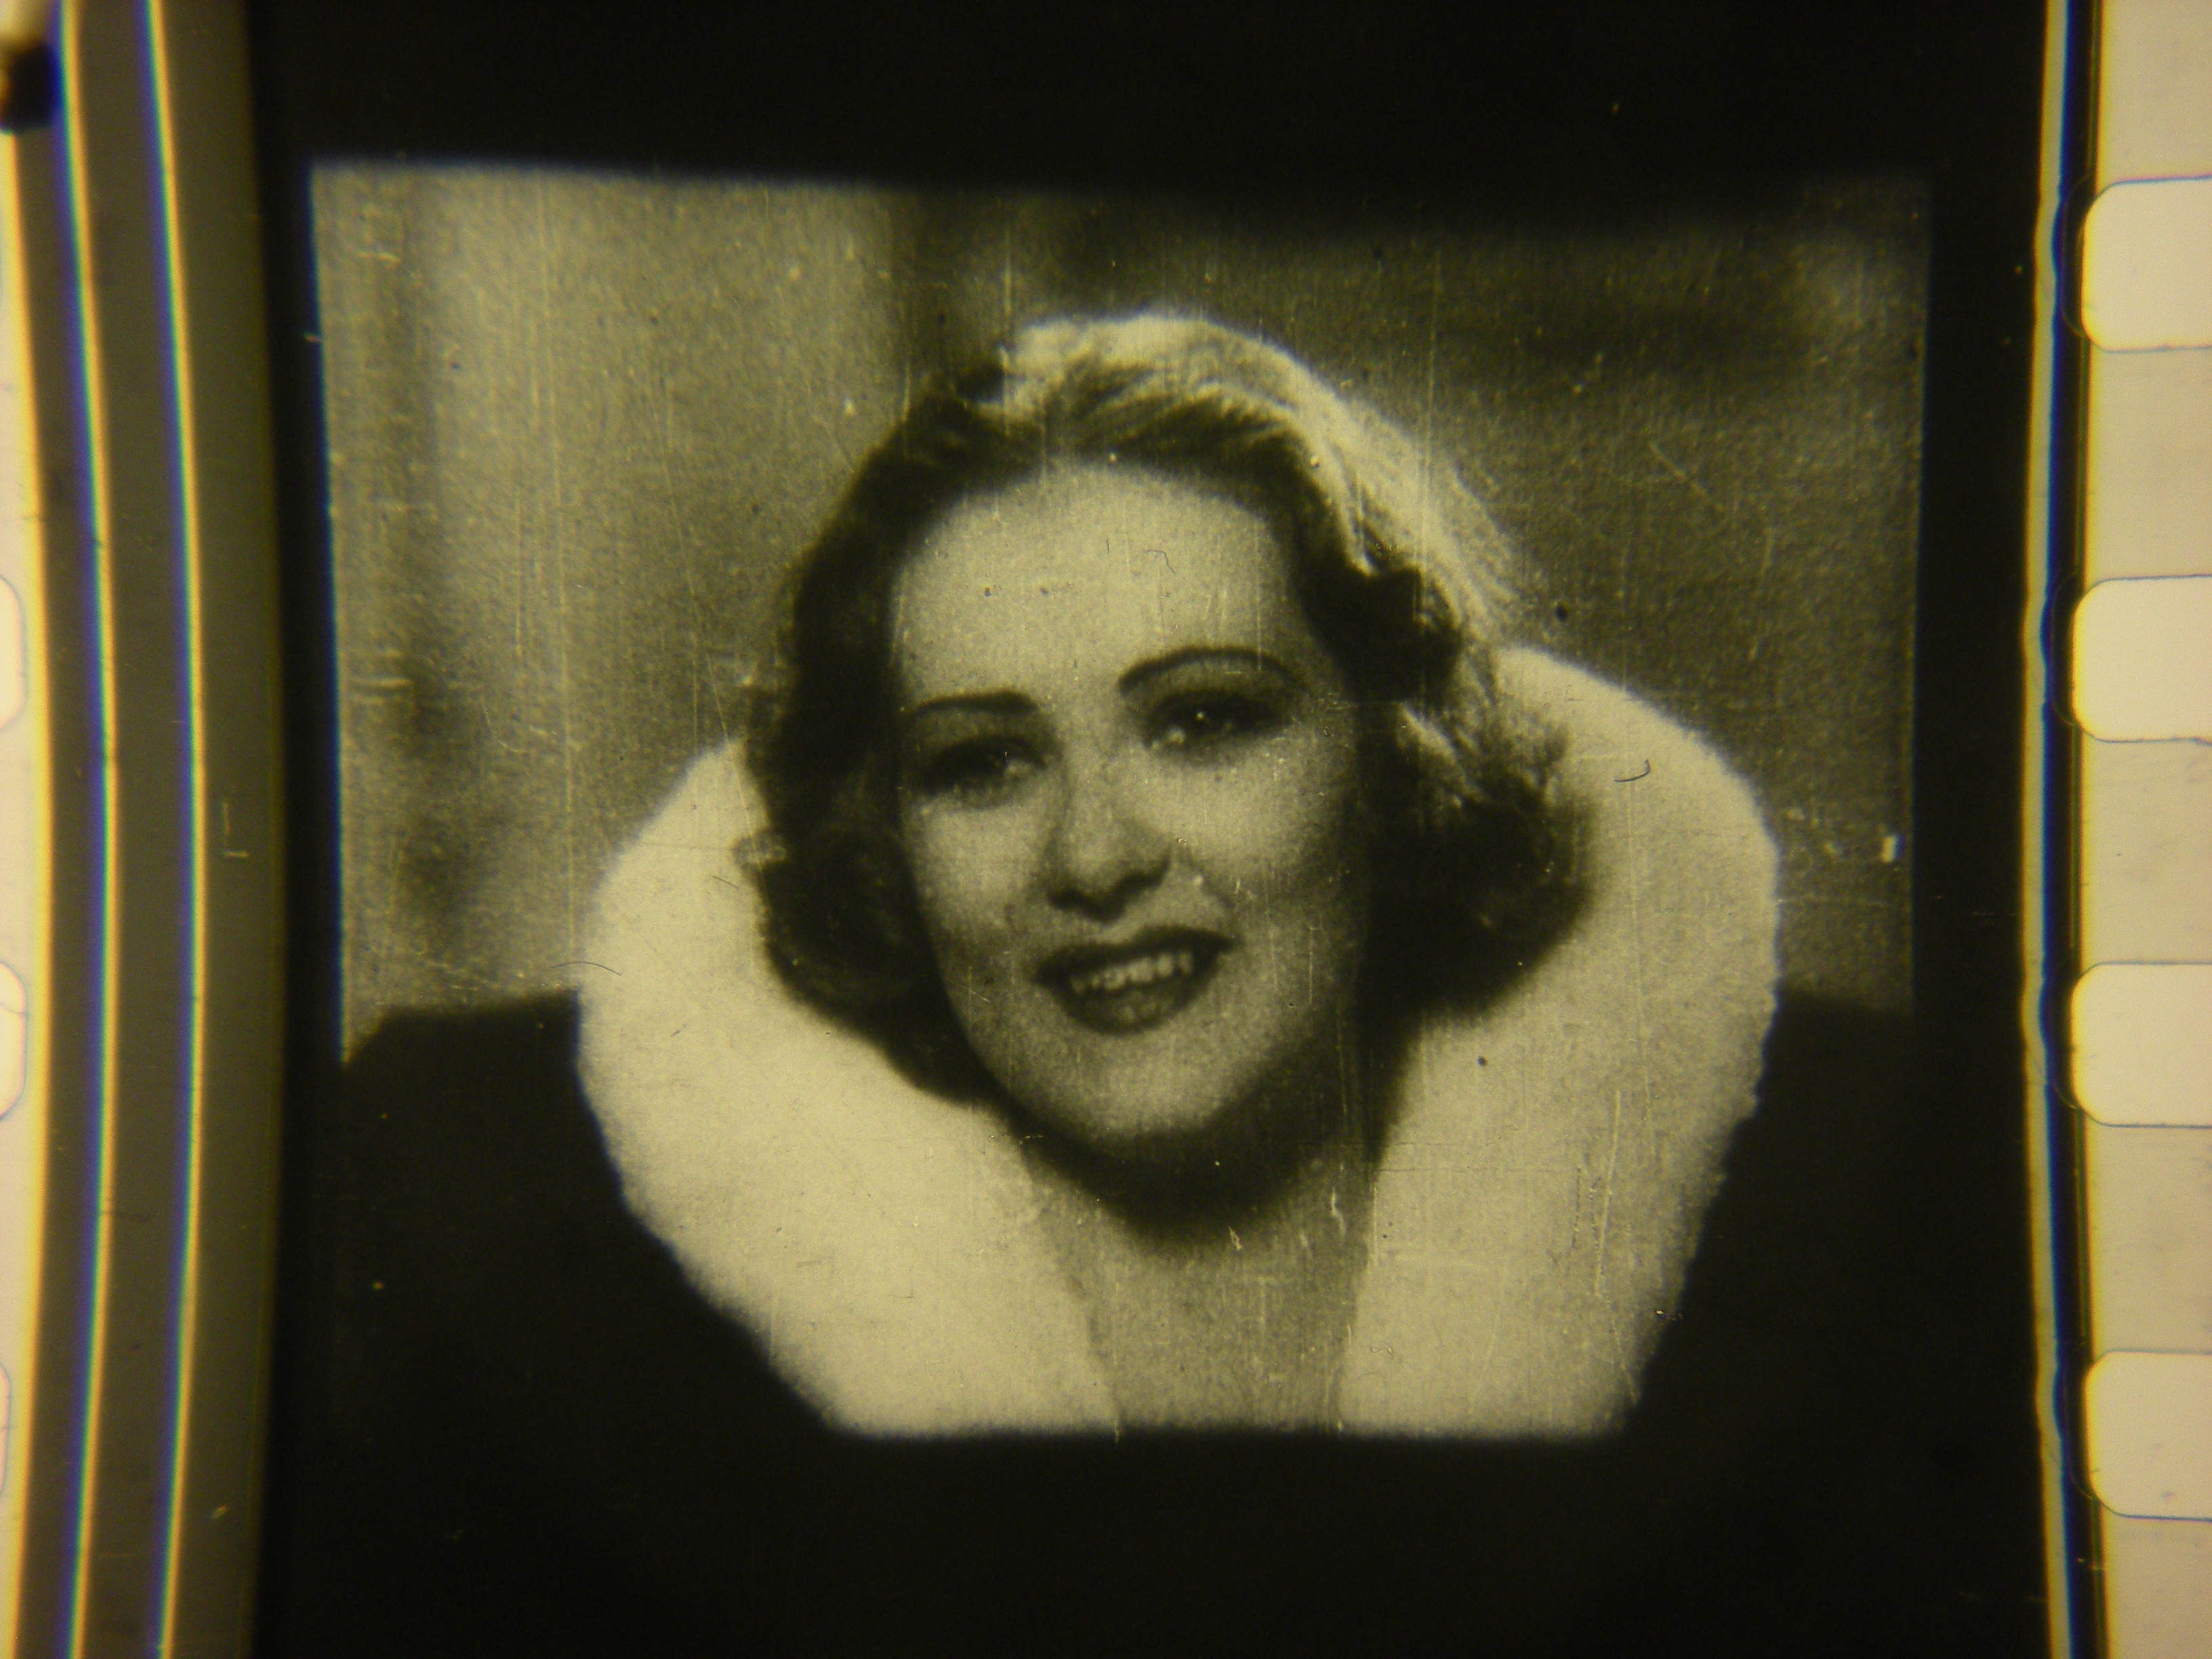 Fur collar lady, close up.A common face on films from the 1930s.